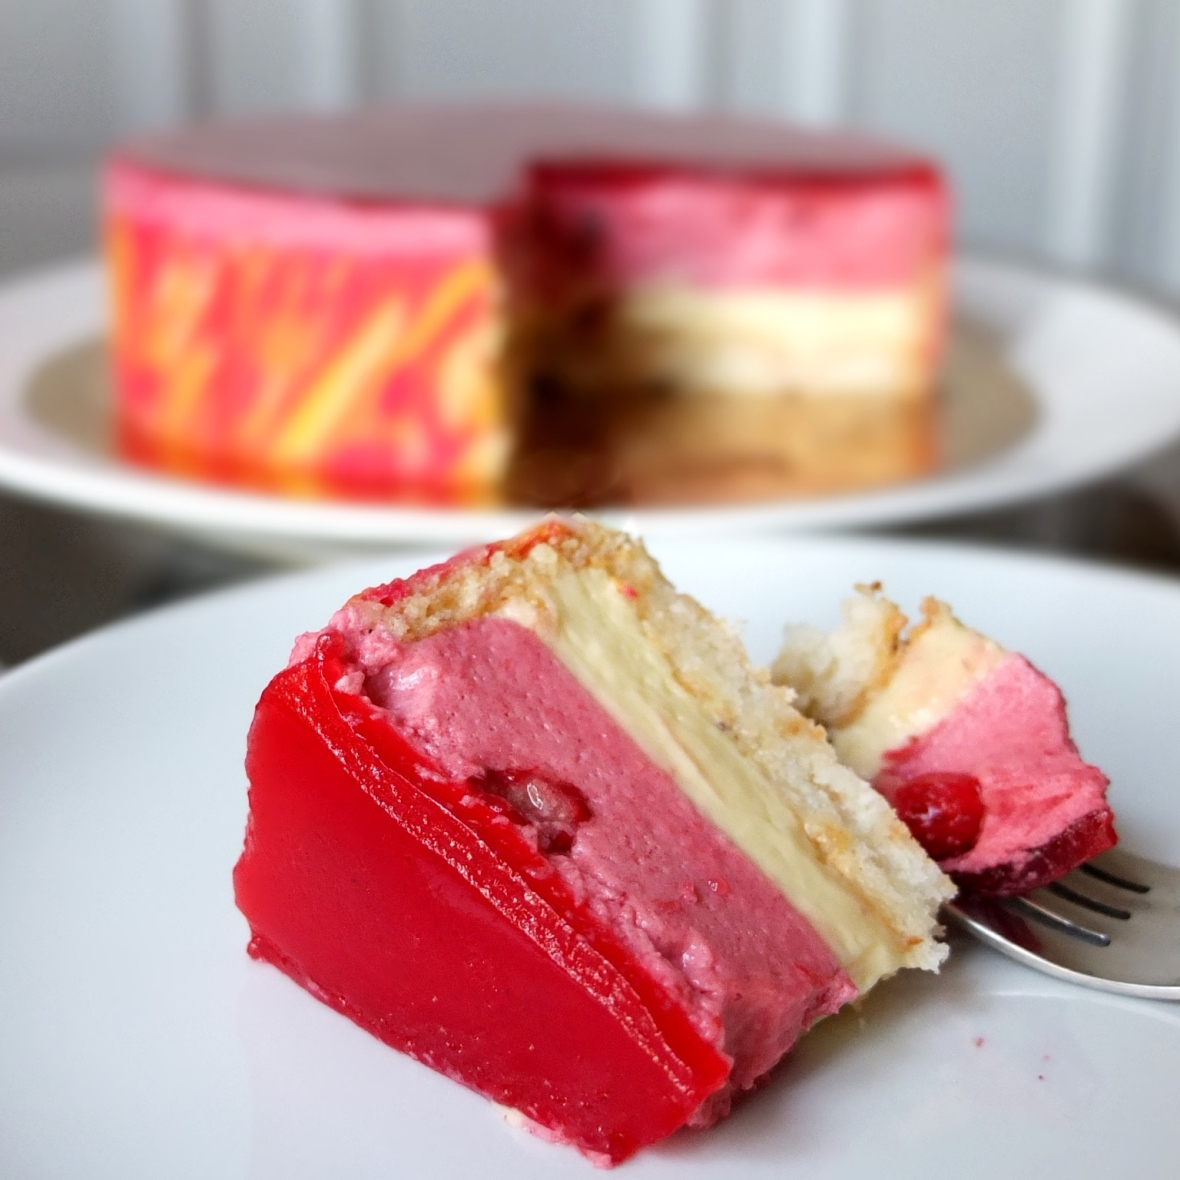 Entremets passionata - passionfruit and raspberry mousse cake